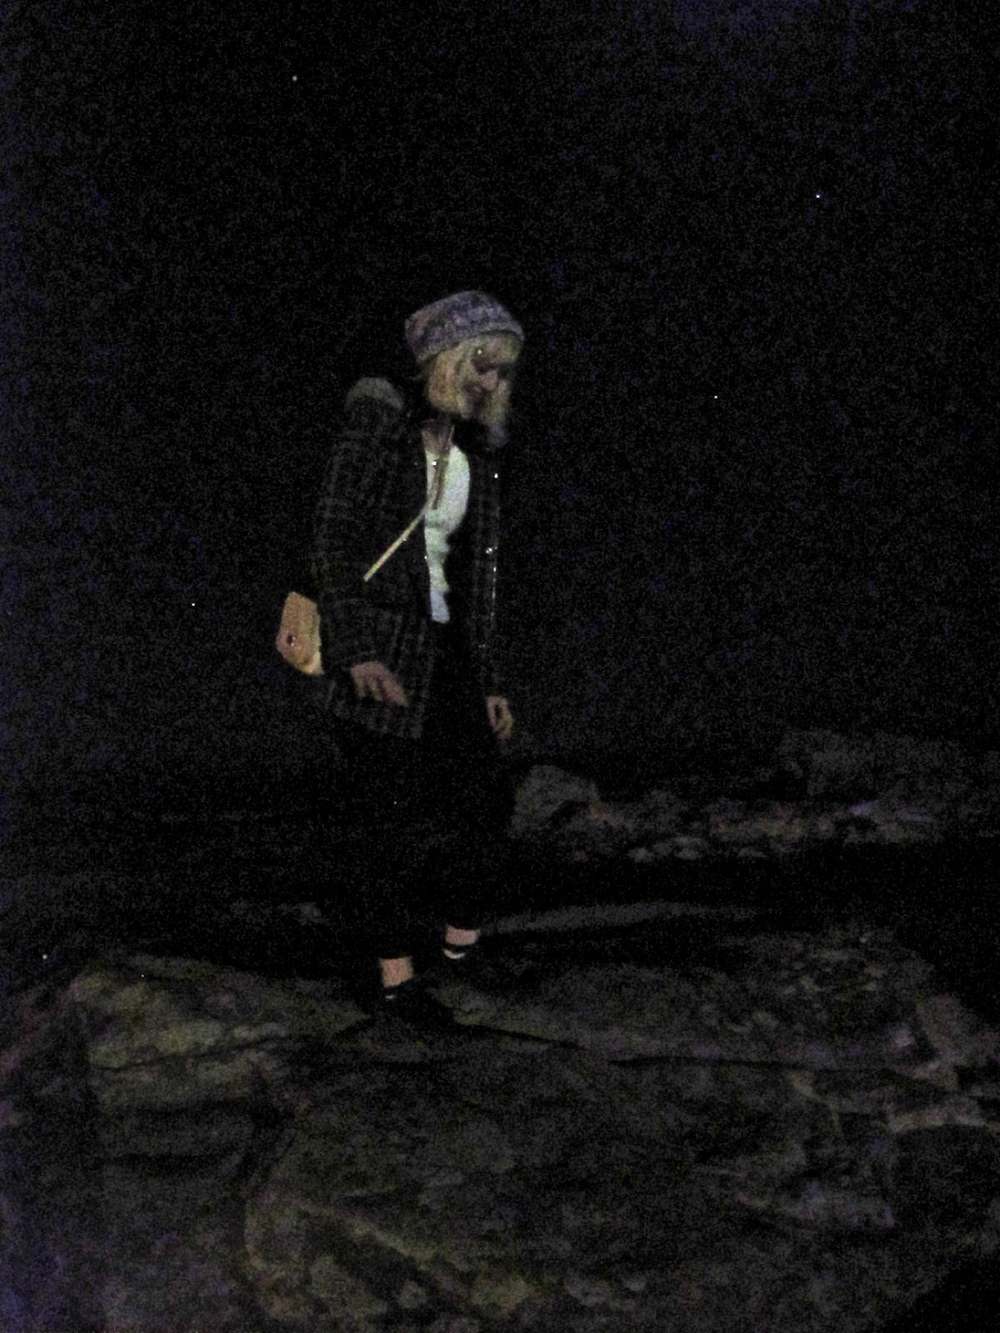 Jamie climbing on rocks at the beach in St Andrews at night.